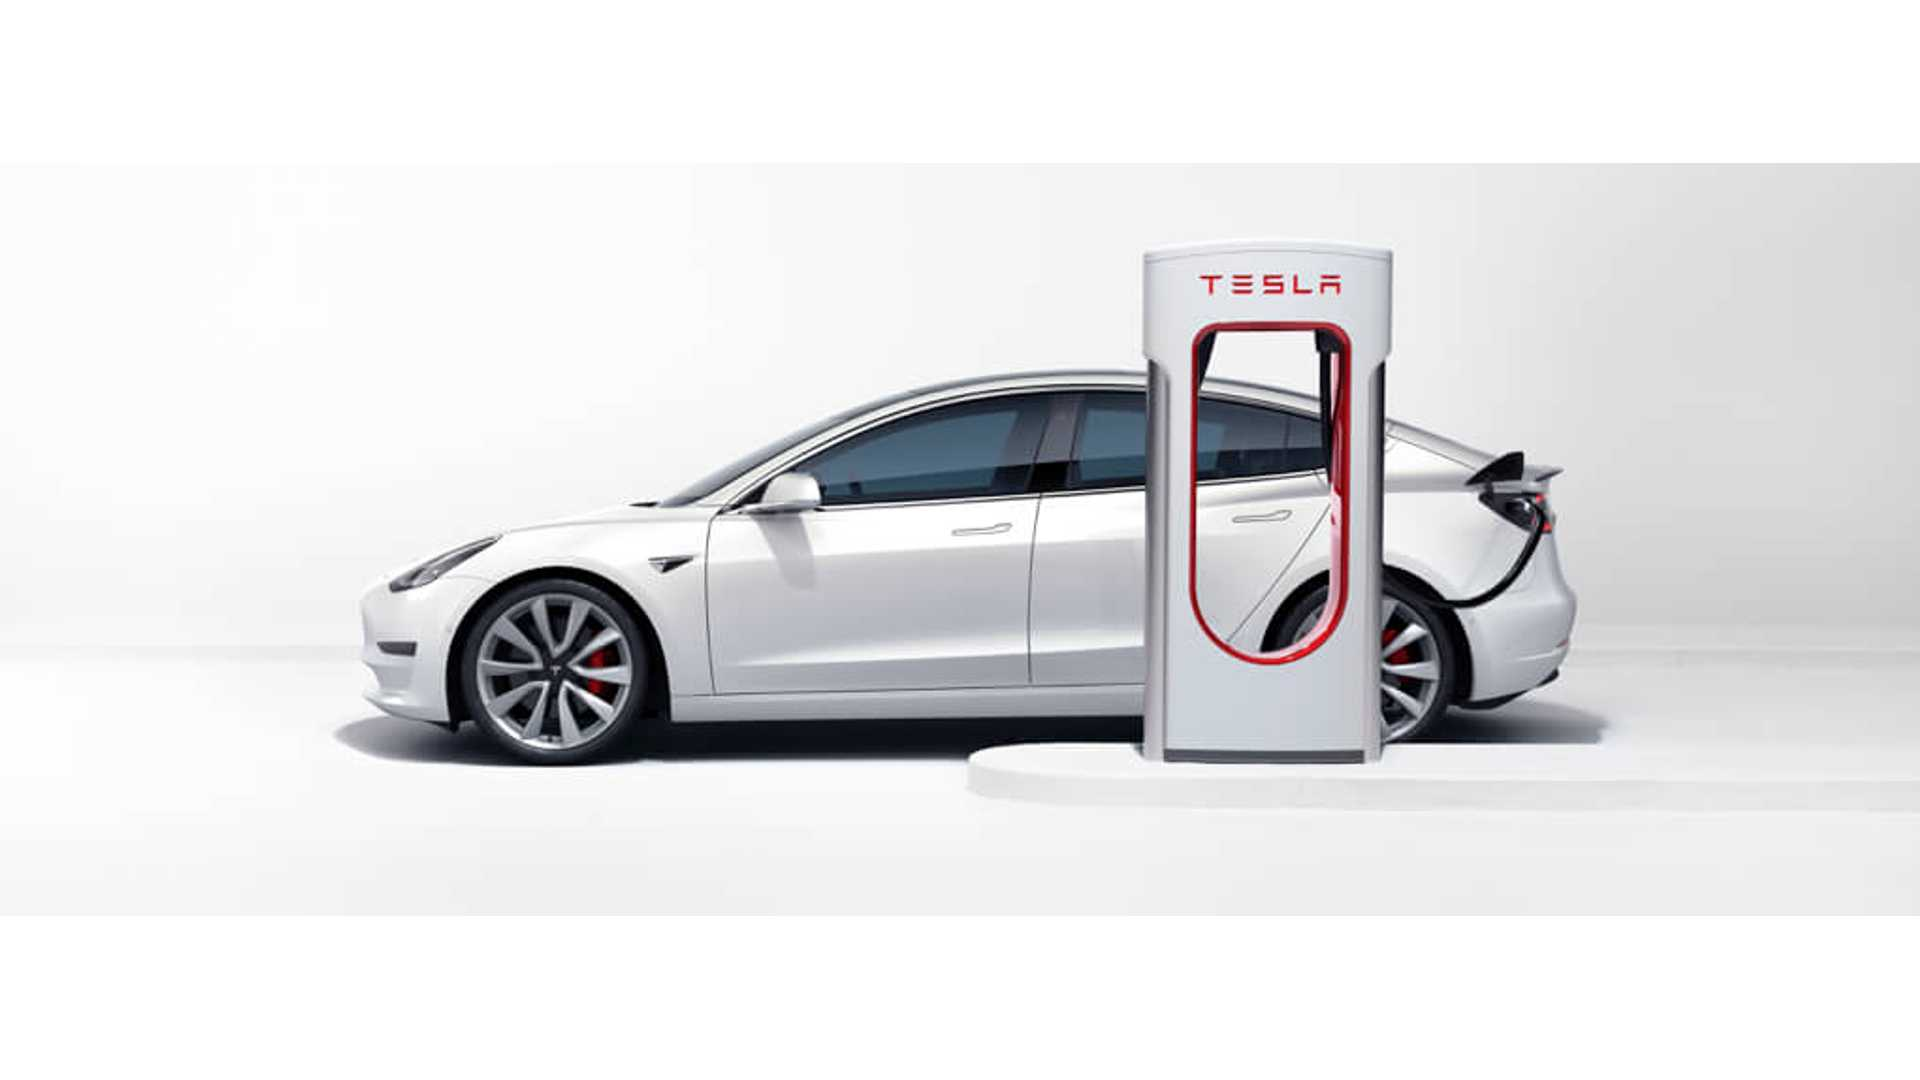 Tesla Model 3 Charges Up To 20-25% Quicker At V2 Superchargers